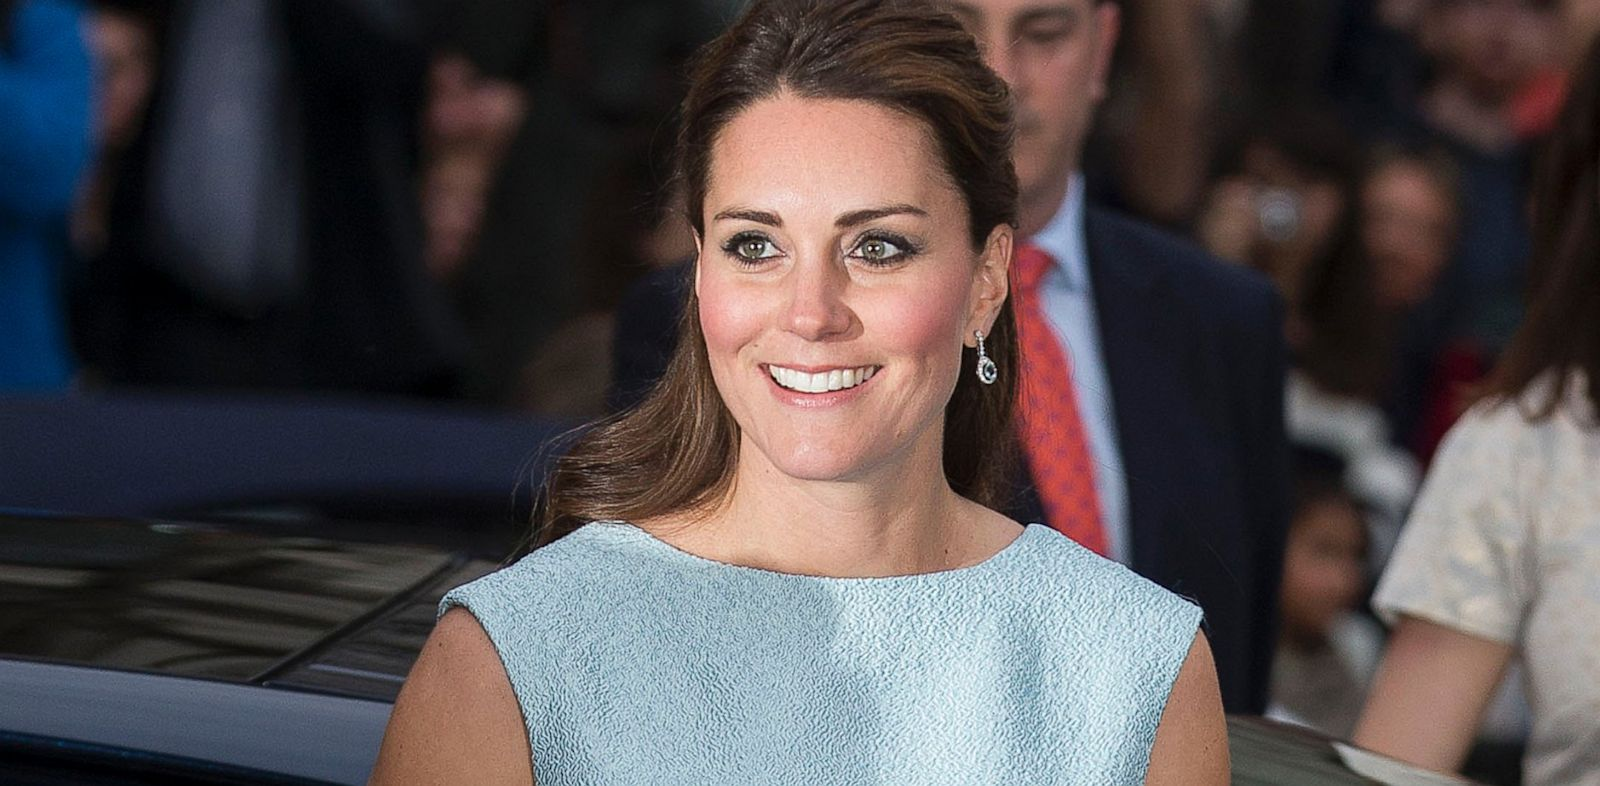 PHOTO: Catherine, Duchess of Cambridge attends The Art Room reception at National Portrait Gallery, April 24, 2013 in London.